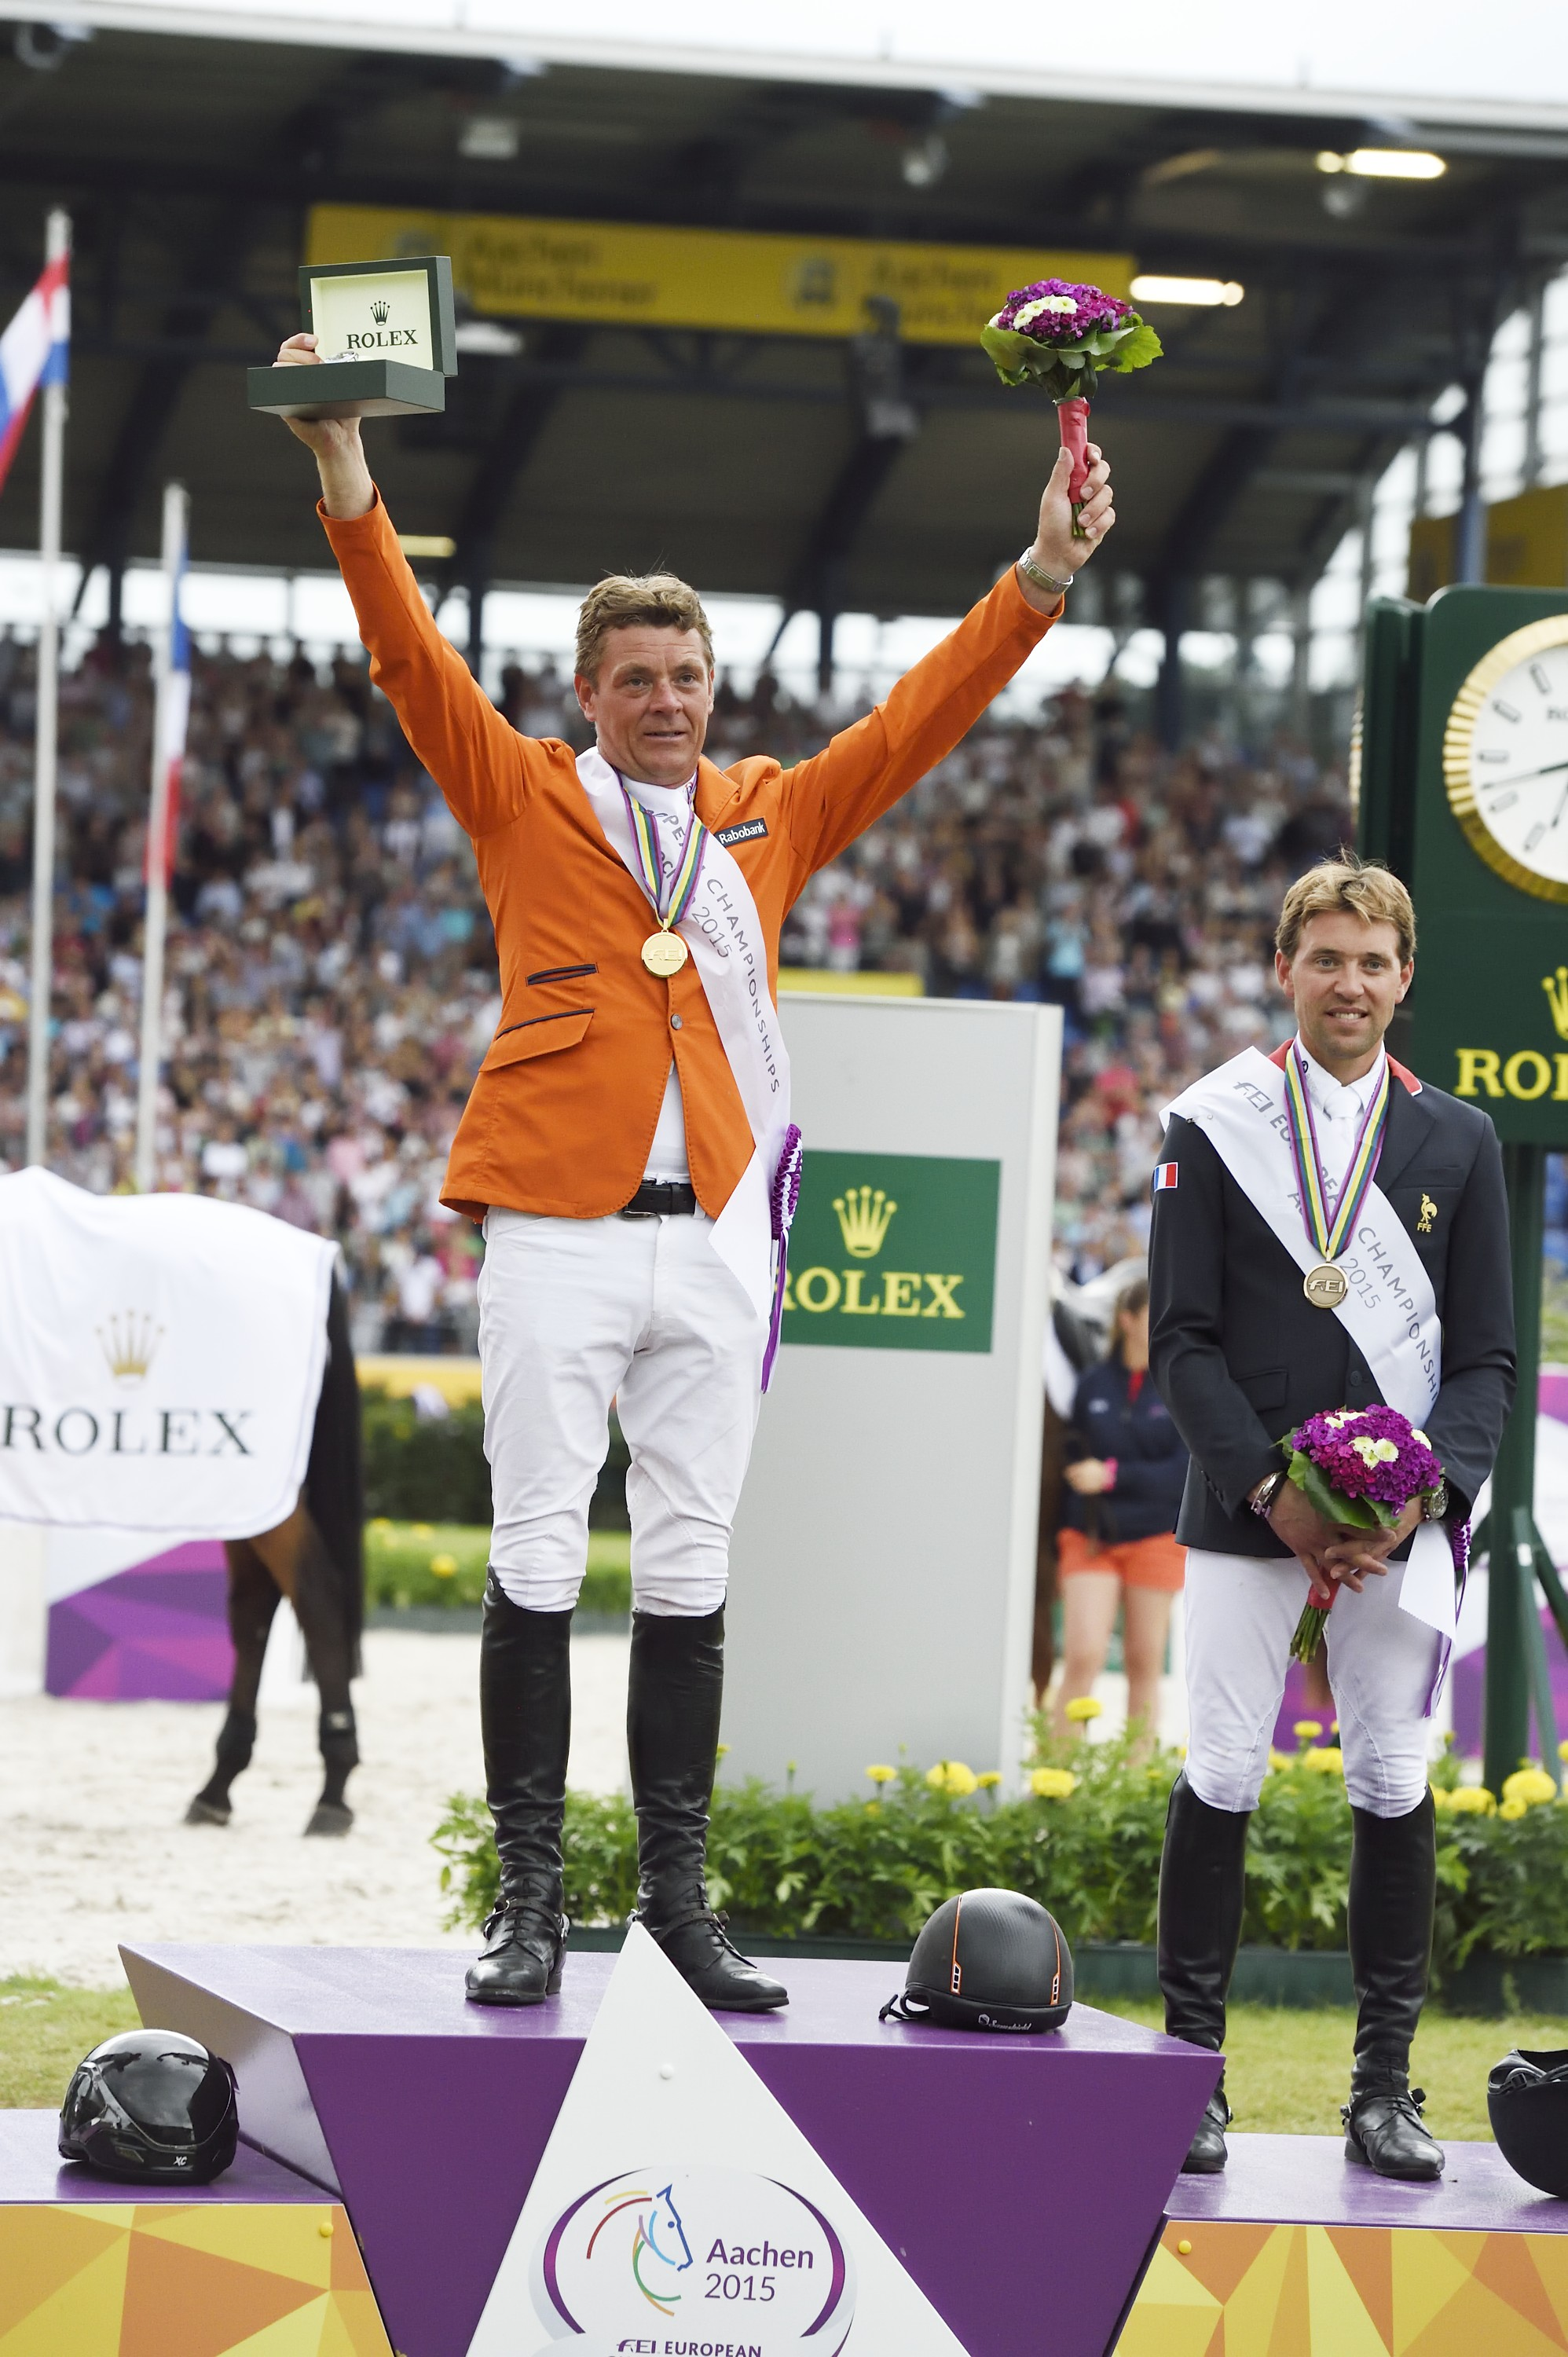 Horse Times Egypt: Equestrian Magazine :News :JEROEN DUBBELDAM WINS GOLD AT THE FEI EUROPEAN CHAMPIONSHIPS IN AACHEN. NOW HOLDS WORLD AND EUROPEAN TITLES CONCURRENTLY.